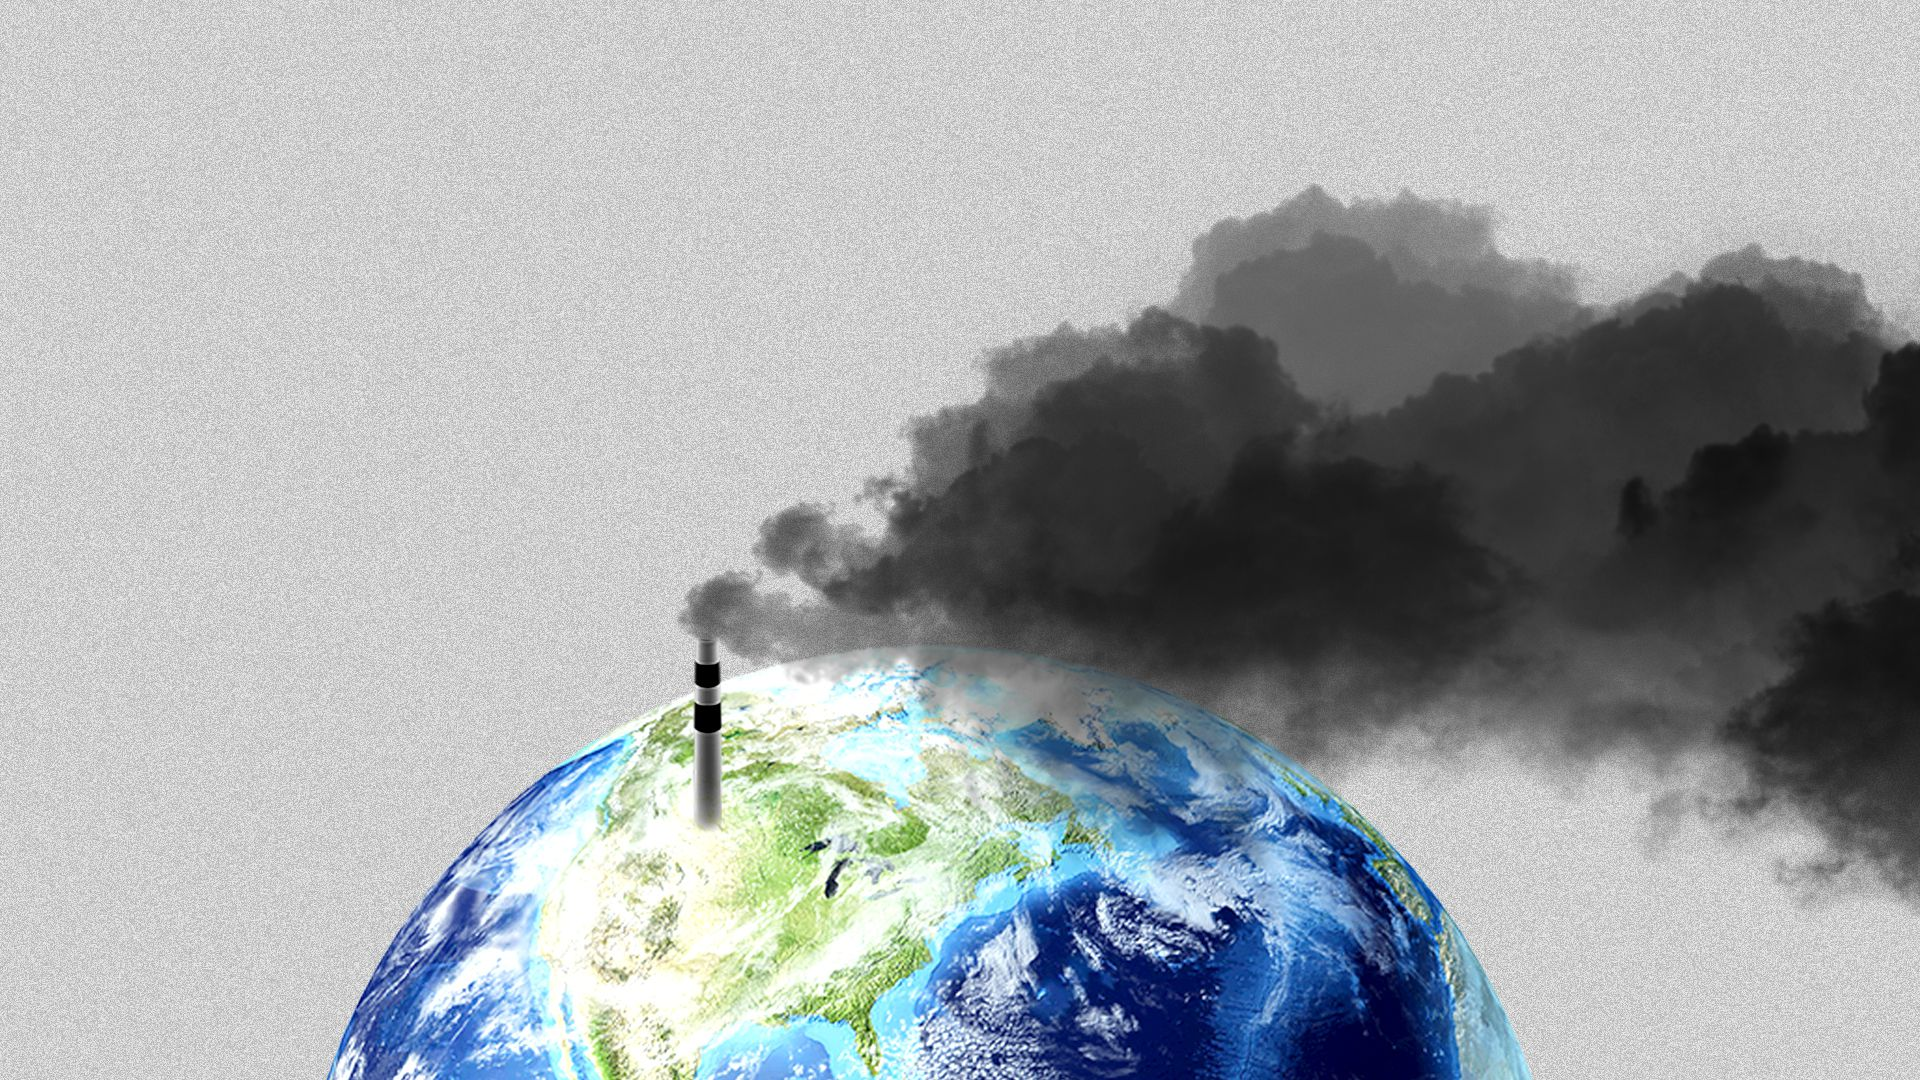 Illustration of a small smokestack coming from the United States covering the globe in smoke